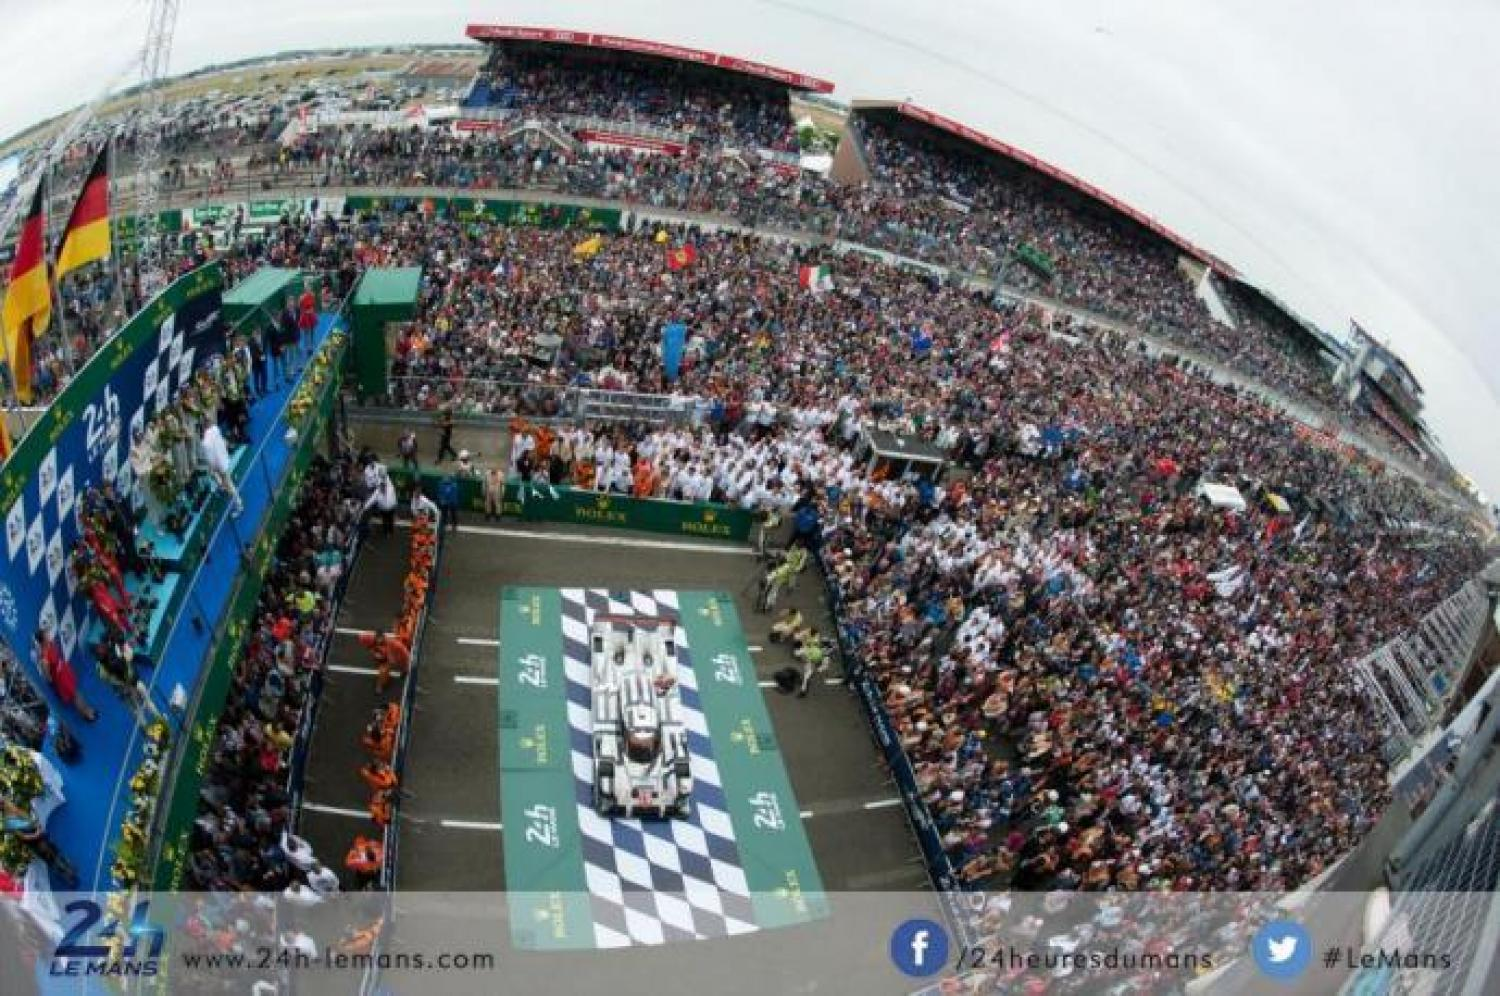 Only 24 days to go! 24 good reasons to attend the 24 hours of Le Mans